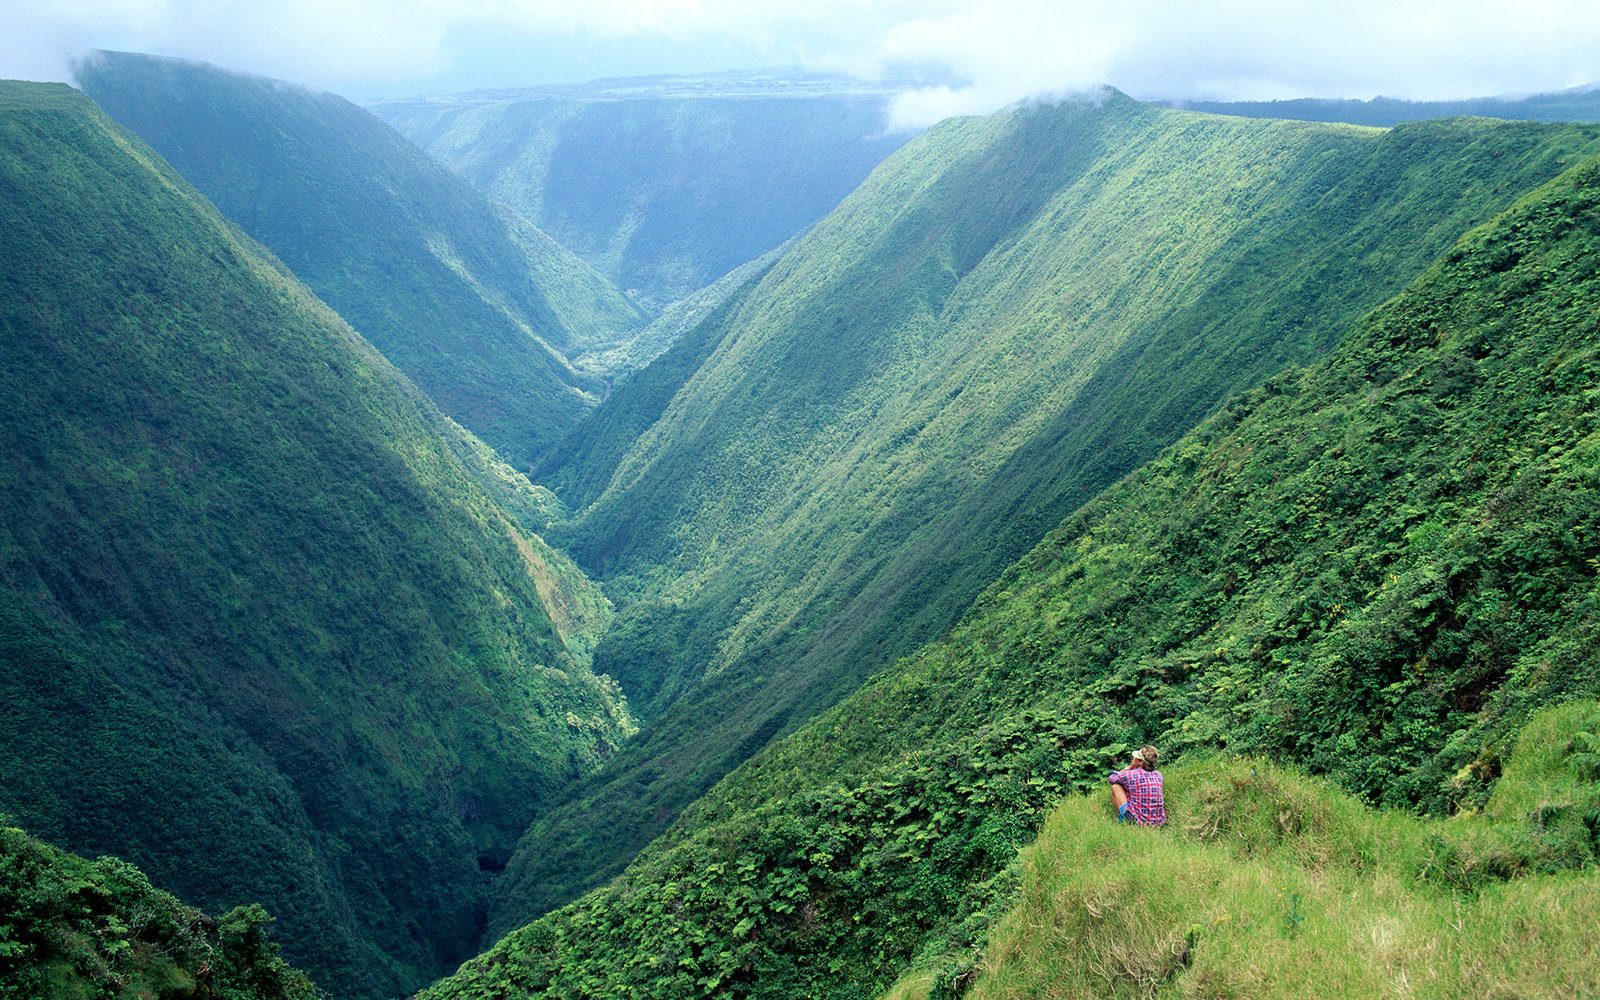 Hawaii, BigIsle, Waipio Valley hiker enjoying back side view into valley